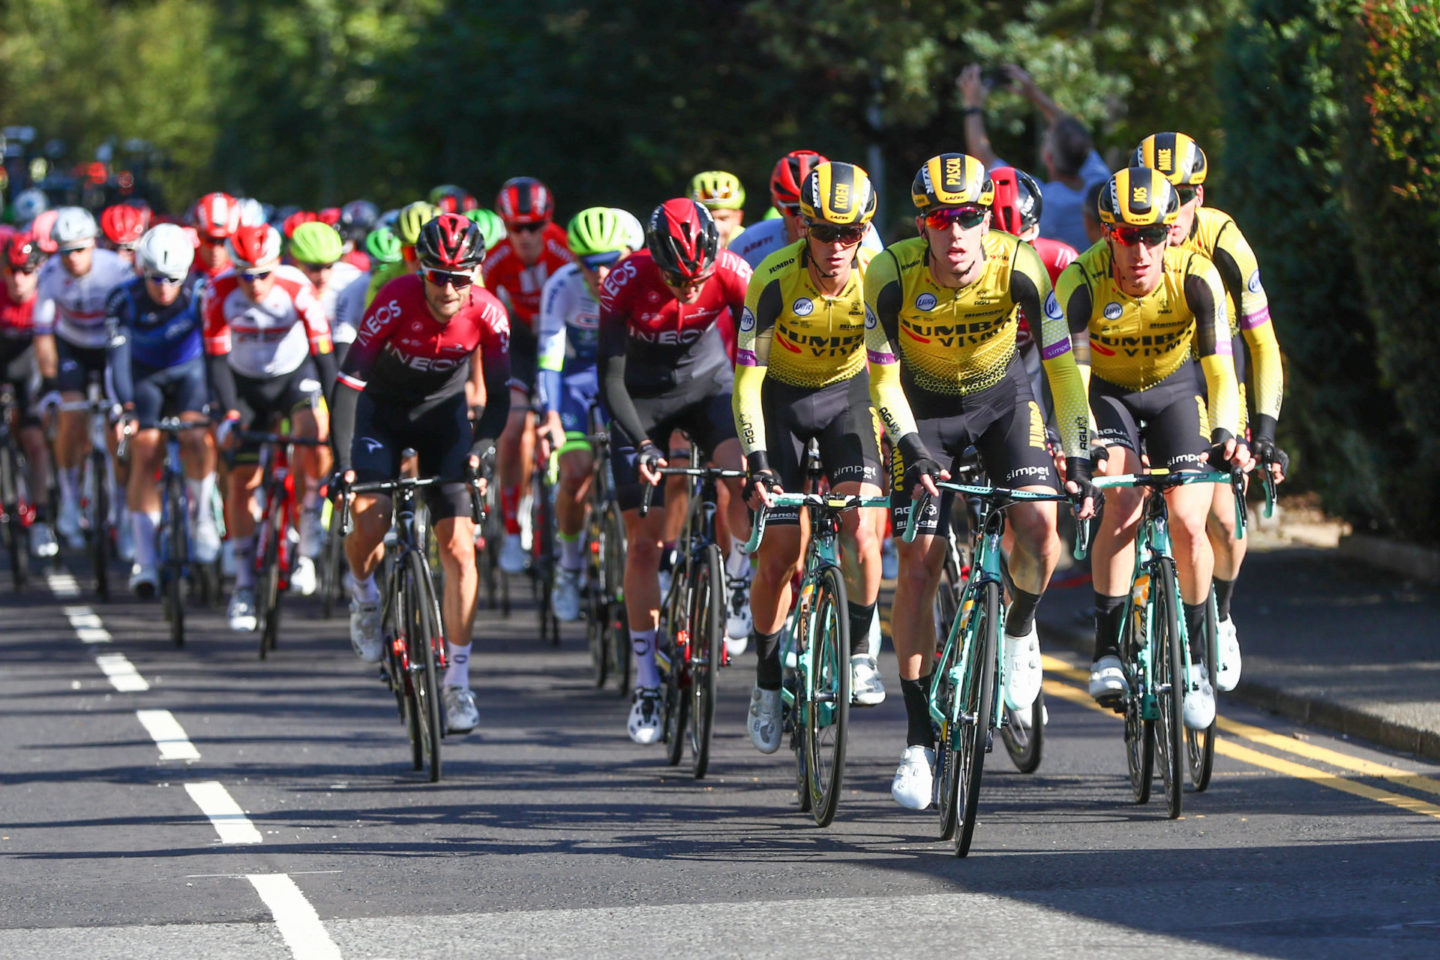 How Do I Make My Bike Go Faster | OVO Energy Tour of Britain 2019 | Expert Advice To Improve Your Cycling Training | Picture by SWpix.com - 07/09/2019 - Sport - Cycling - OVO Energy Tour of Britain 2019 - Stage 1: Glasgow to Kirkcudbright, Scotland - The peloton rolls through the suburbs of Glasgow, Jumbo Visma.